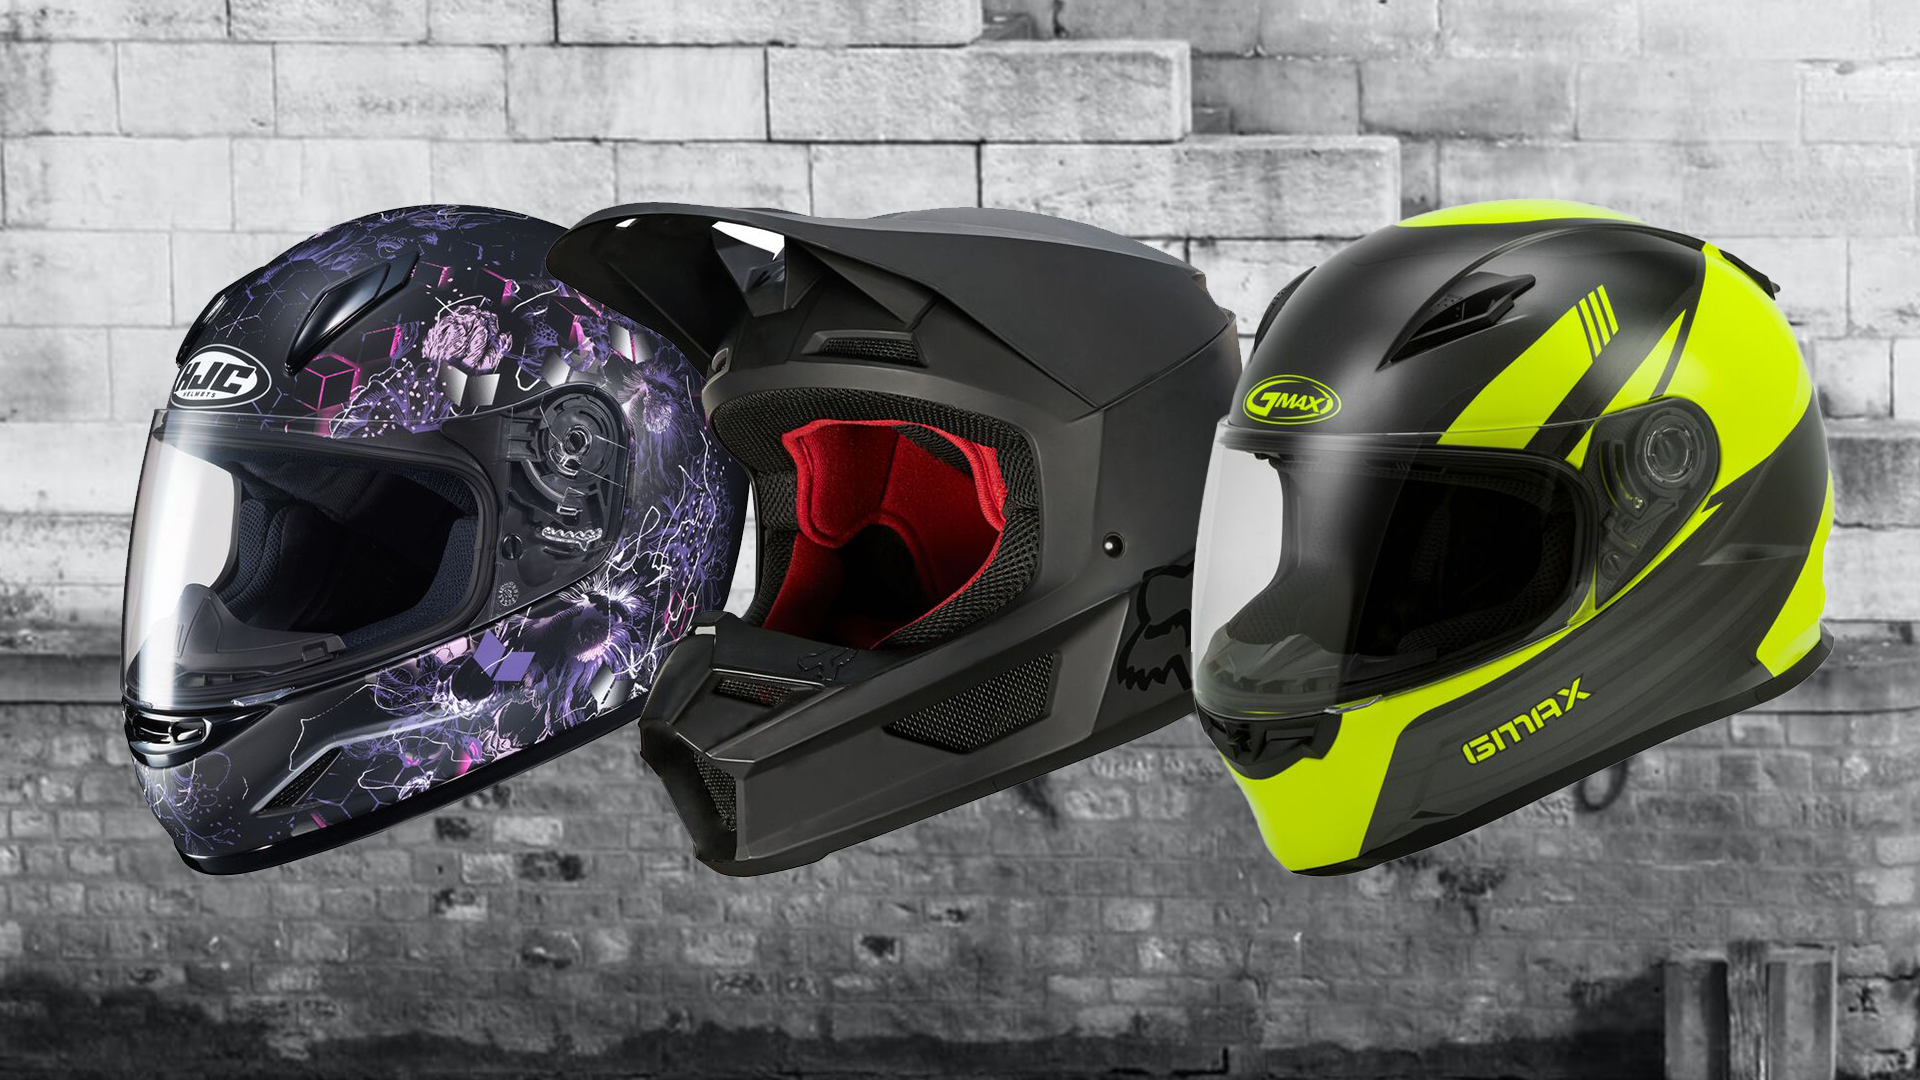 The Best Motorcycle Helmets for Kids